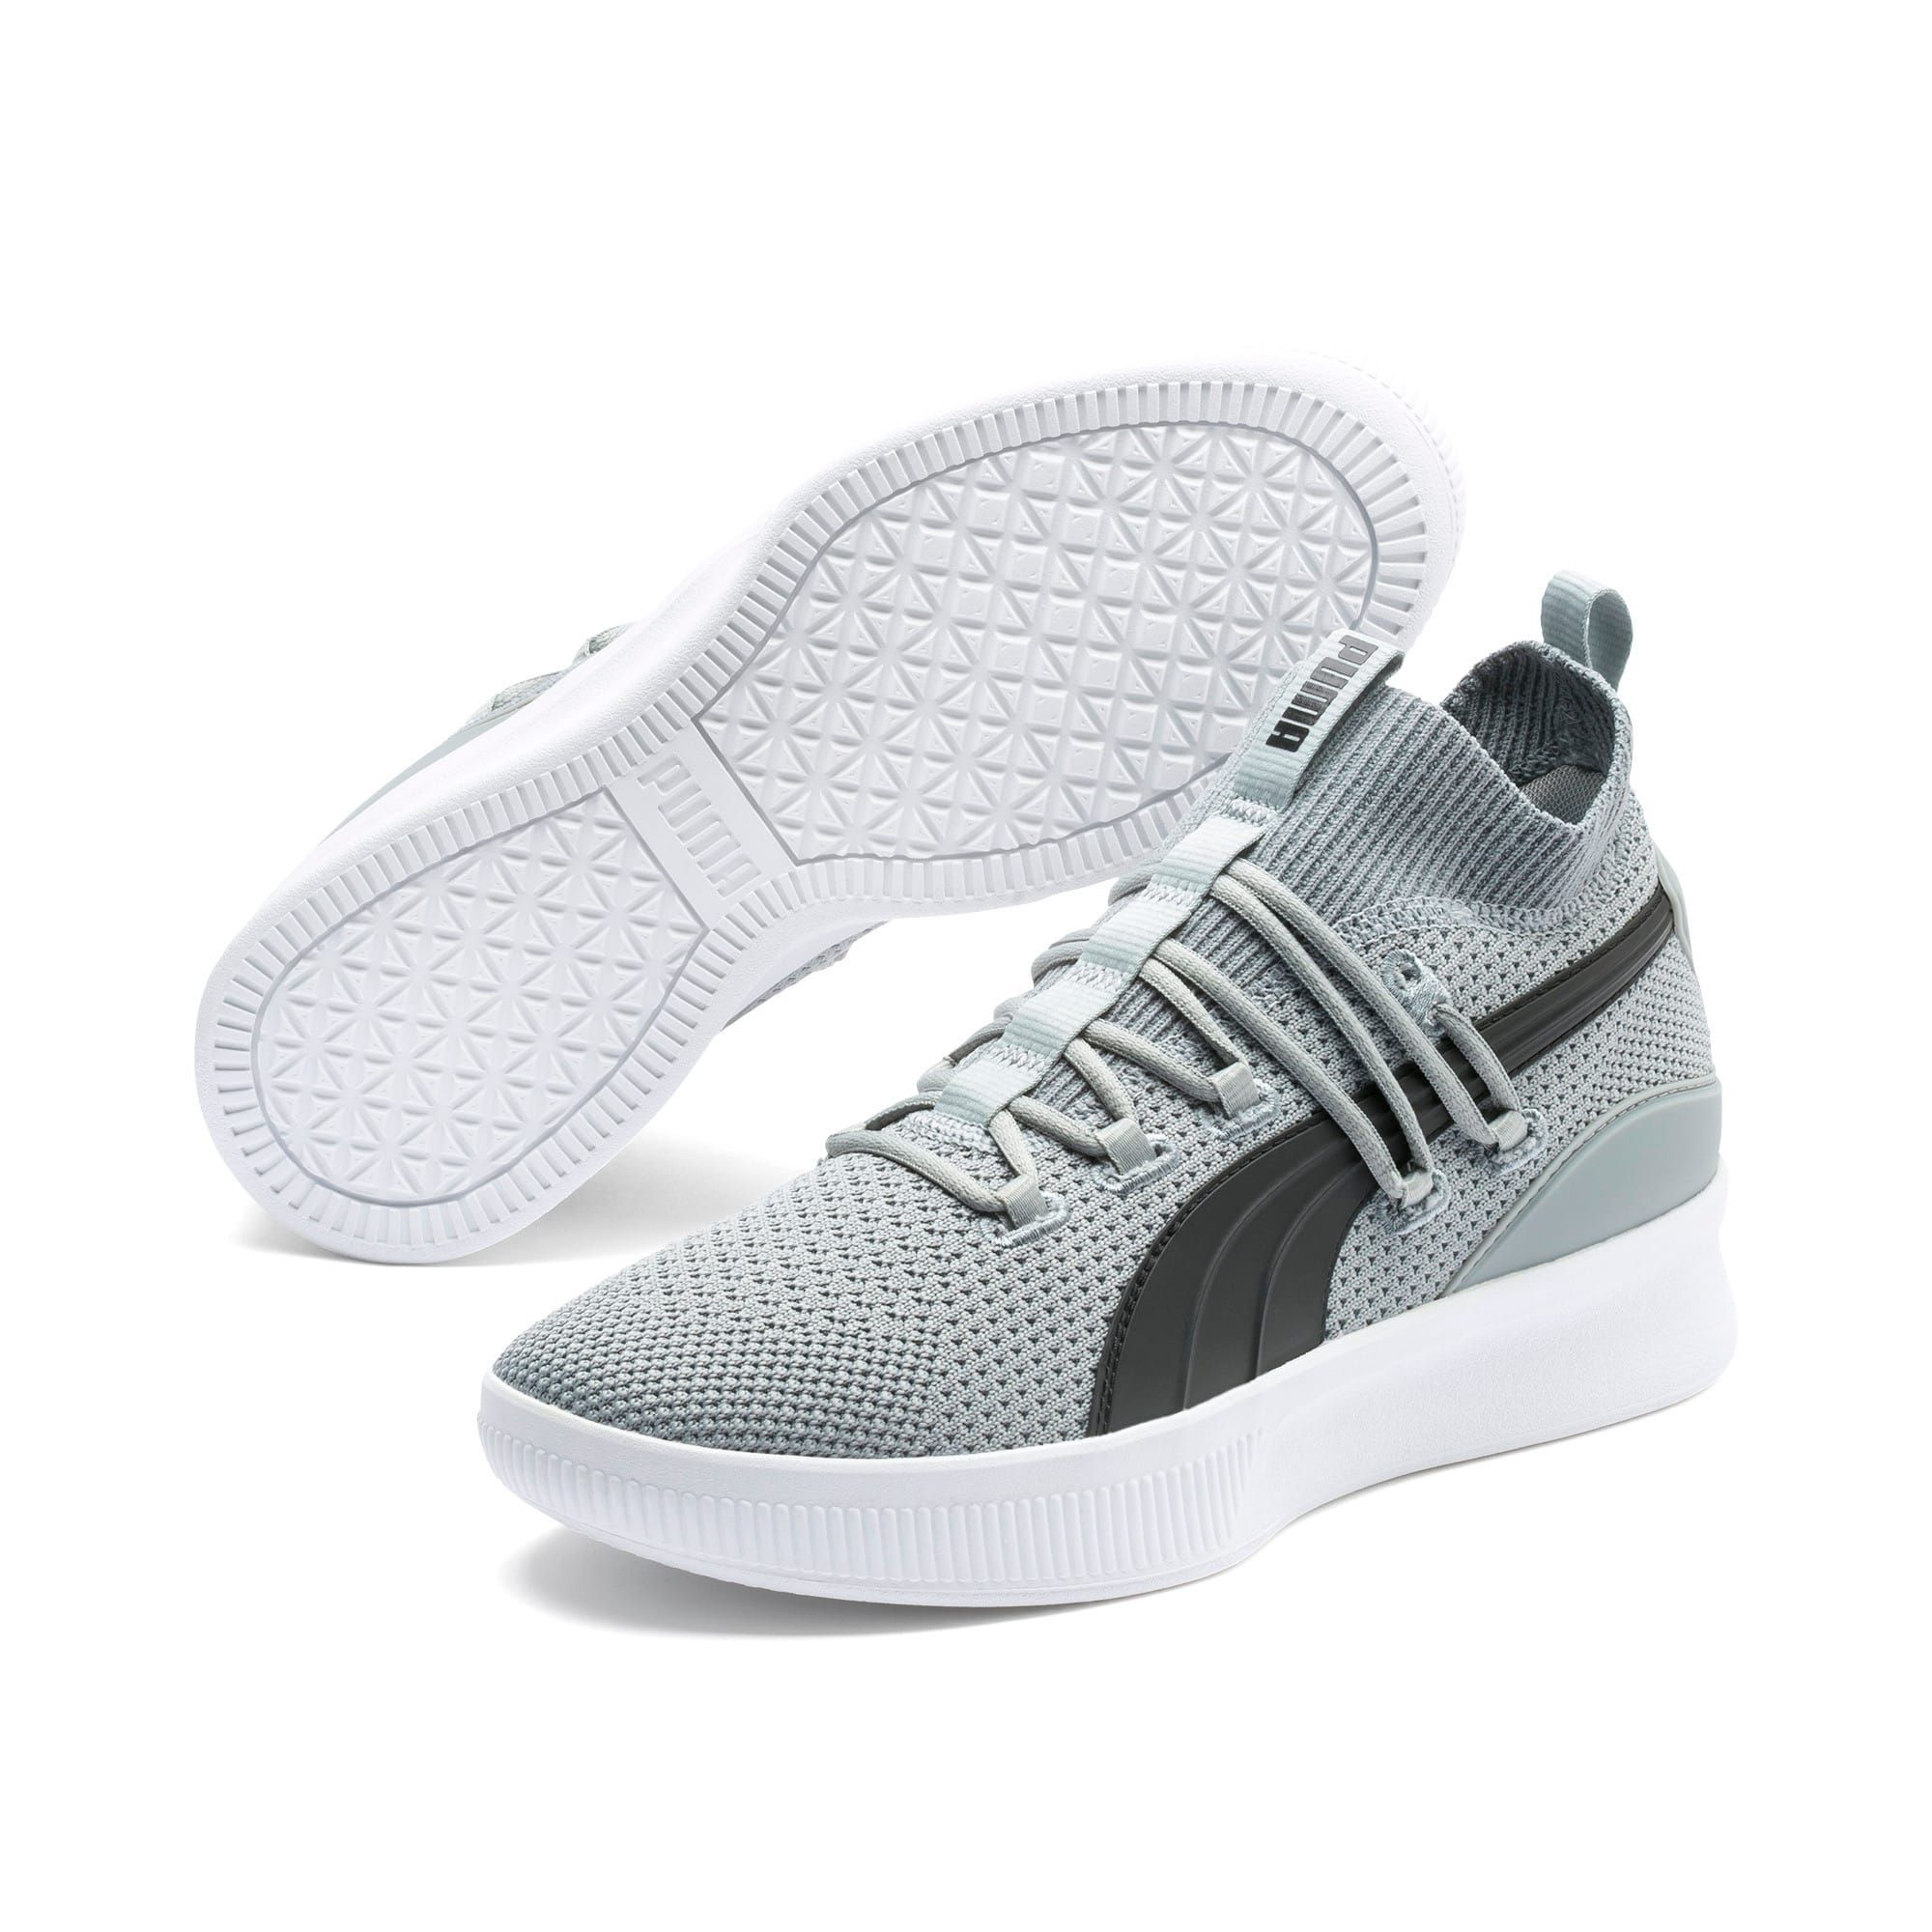 Men's PUMA Clyde Court Basketball Shoe Sneakers in Quarry